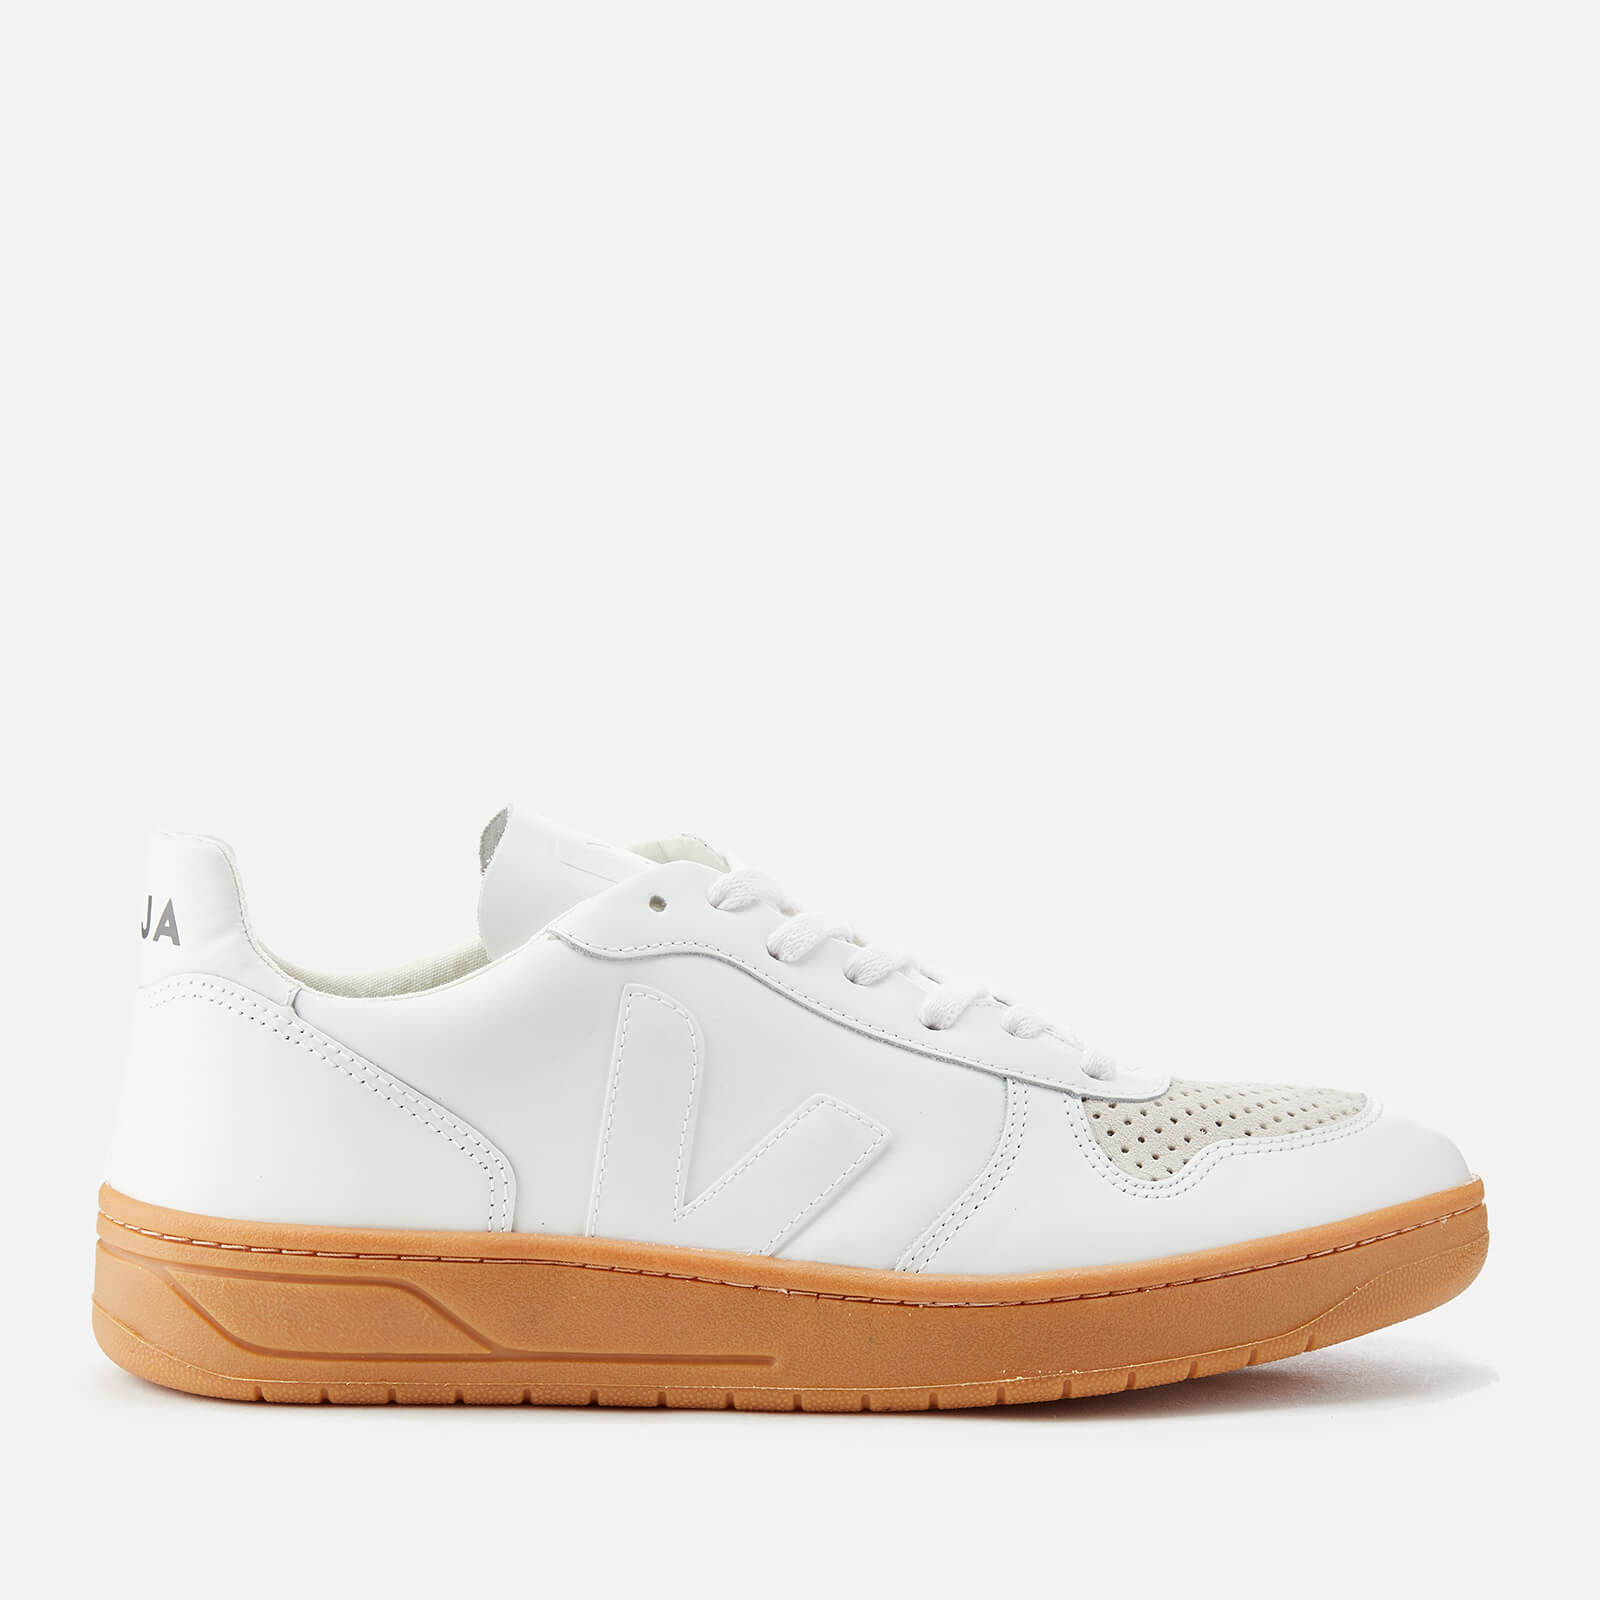 c86273eae9baa Veja Men s V-10 Leather Trainers - Extra White Natural - Free UK Delivery  over £50